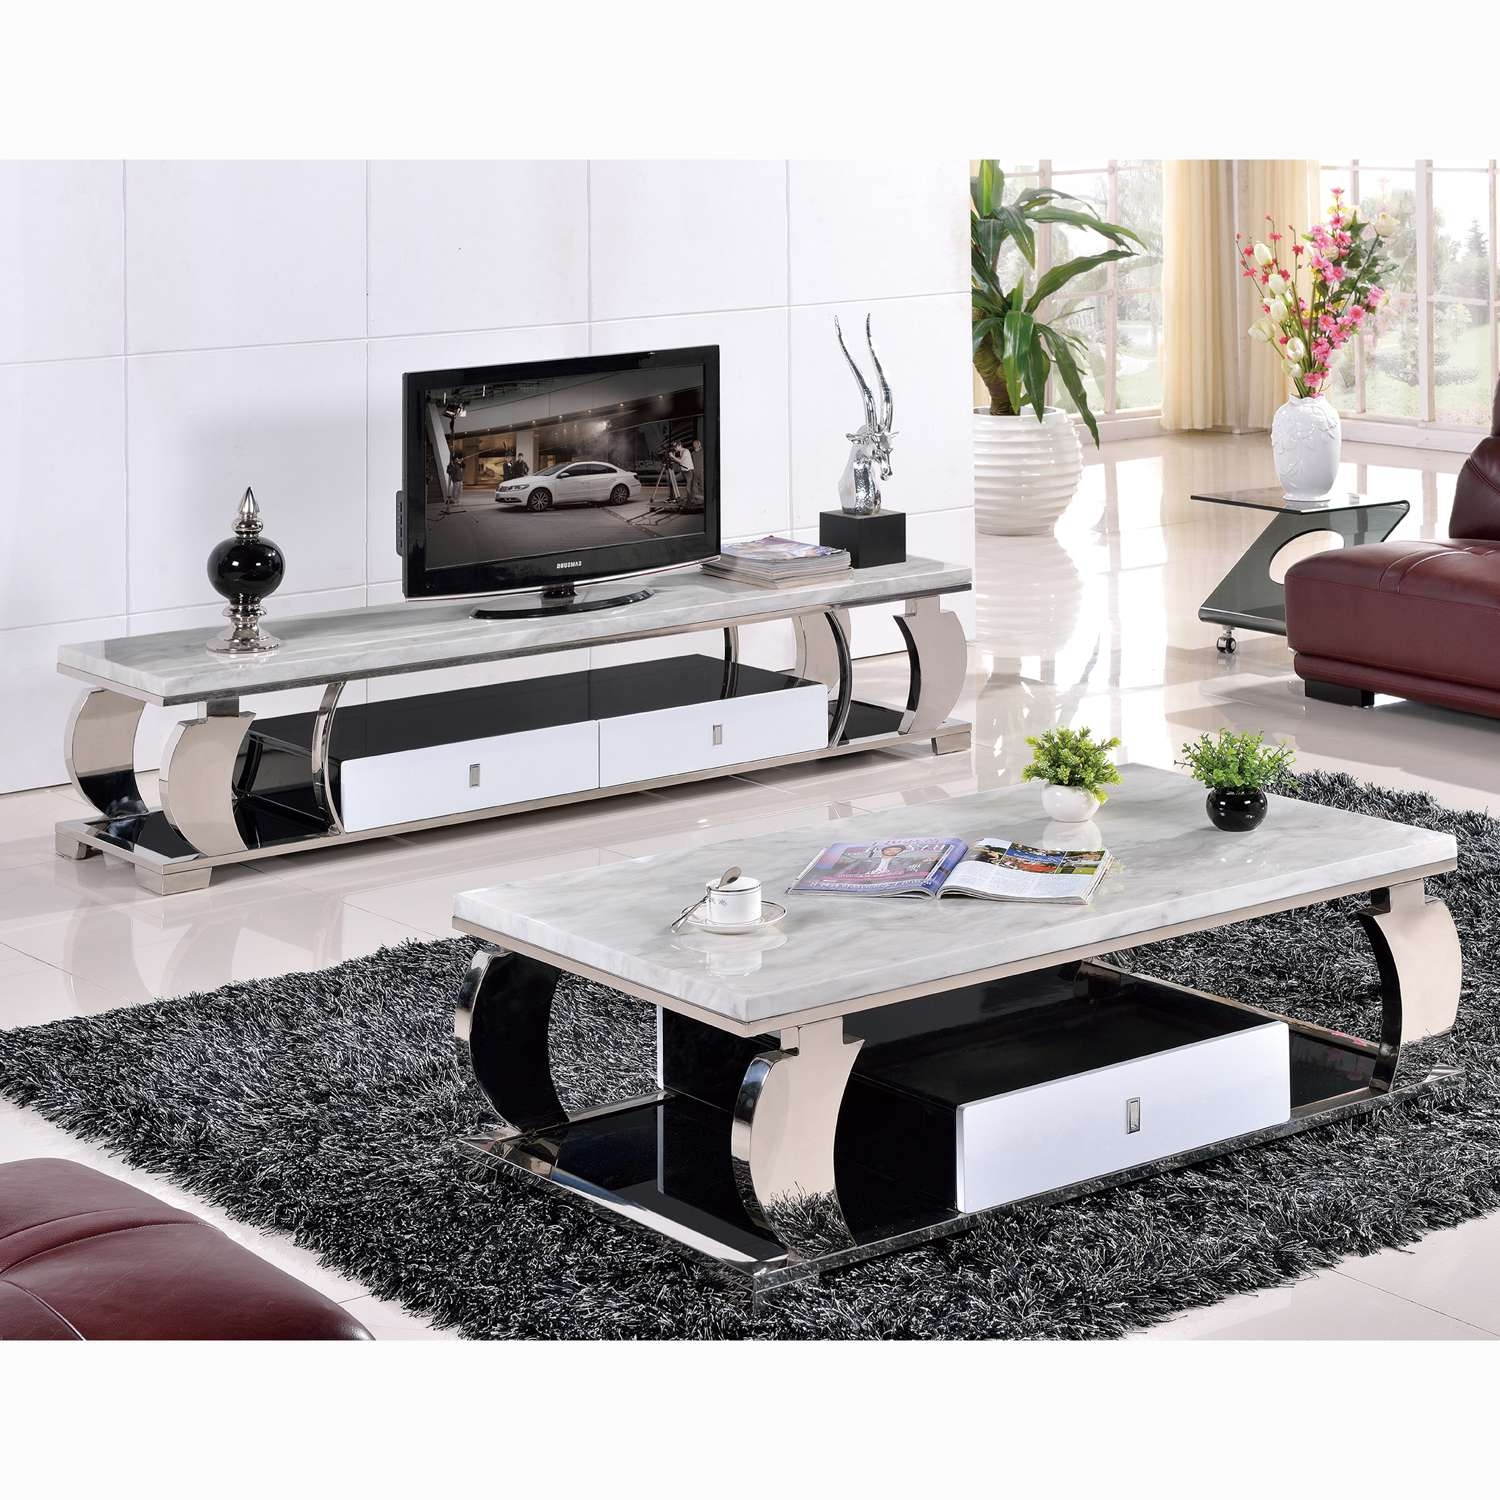 Grade Stainless Steel Marble Glass Coffee Table Tv Cabinet Modern Pertaining To Recent Tv Unit And Coffee Table Sets (View 18 of 20)